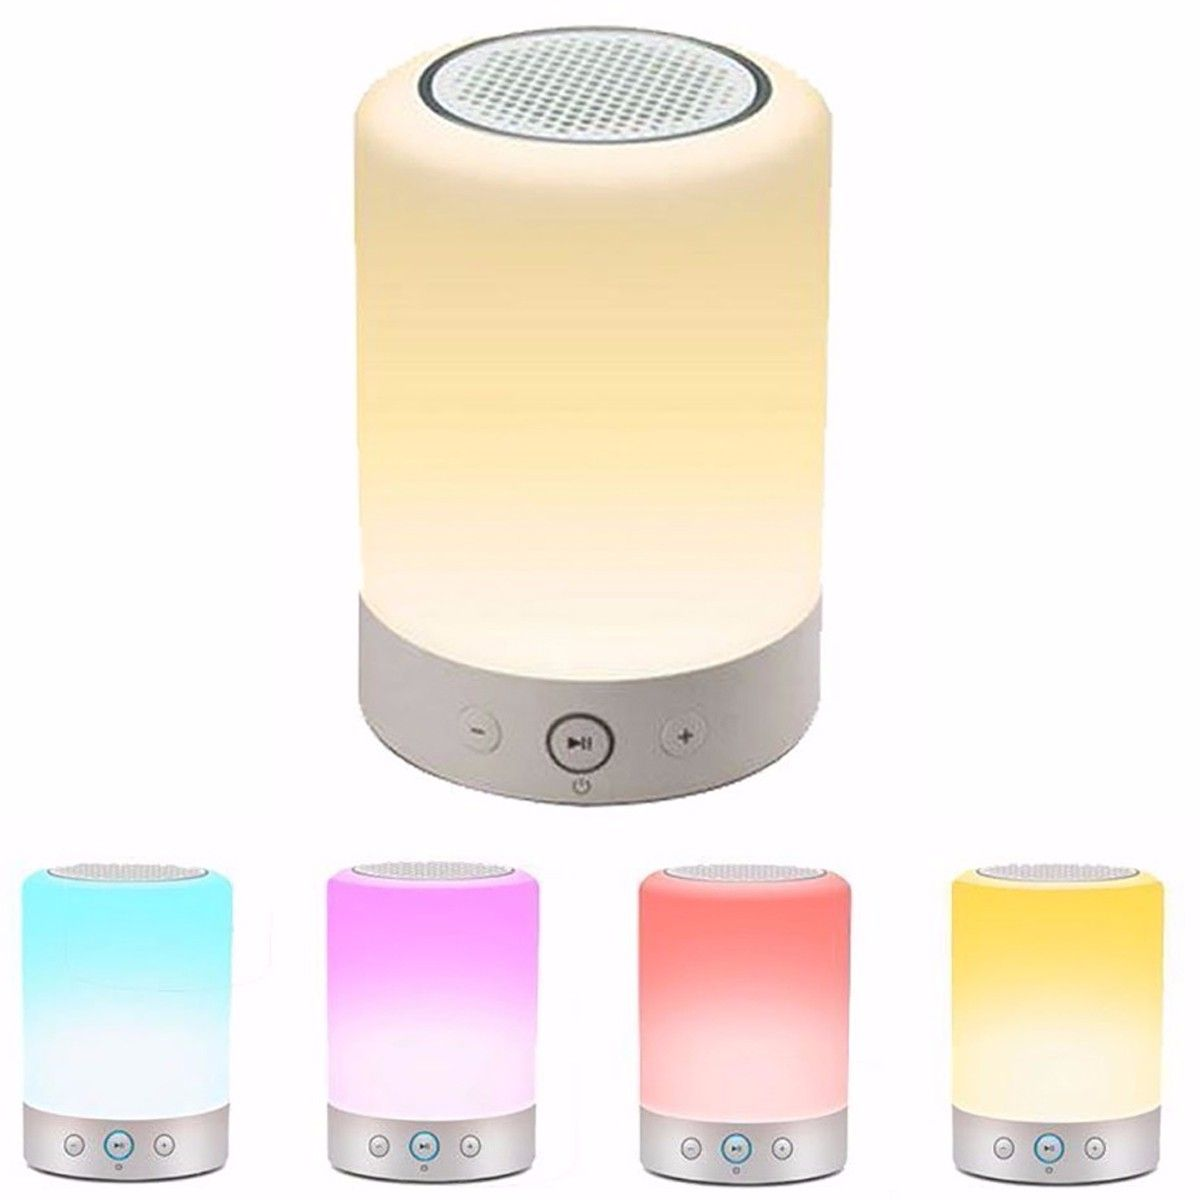 Bluetooth Speaker Wireless Stereo Speakers Led Bedside Lamp With Touch Sensitive Control Panel Different Wireless Stereo Speakers Stereo Speakers Bluetooth